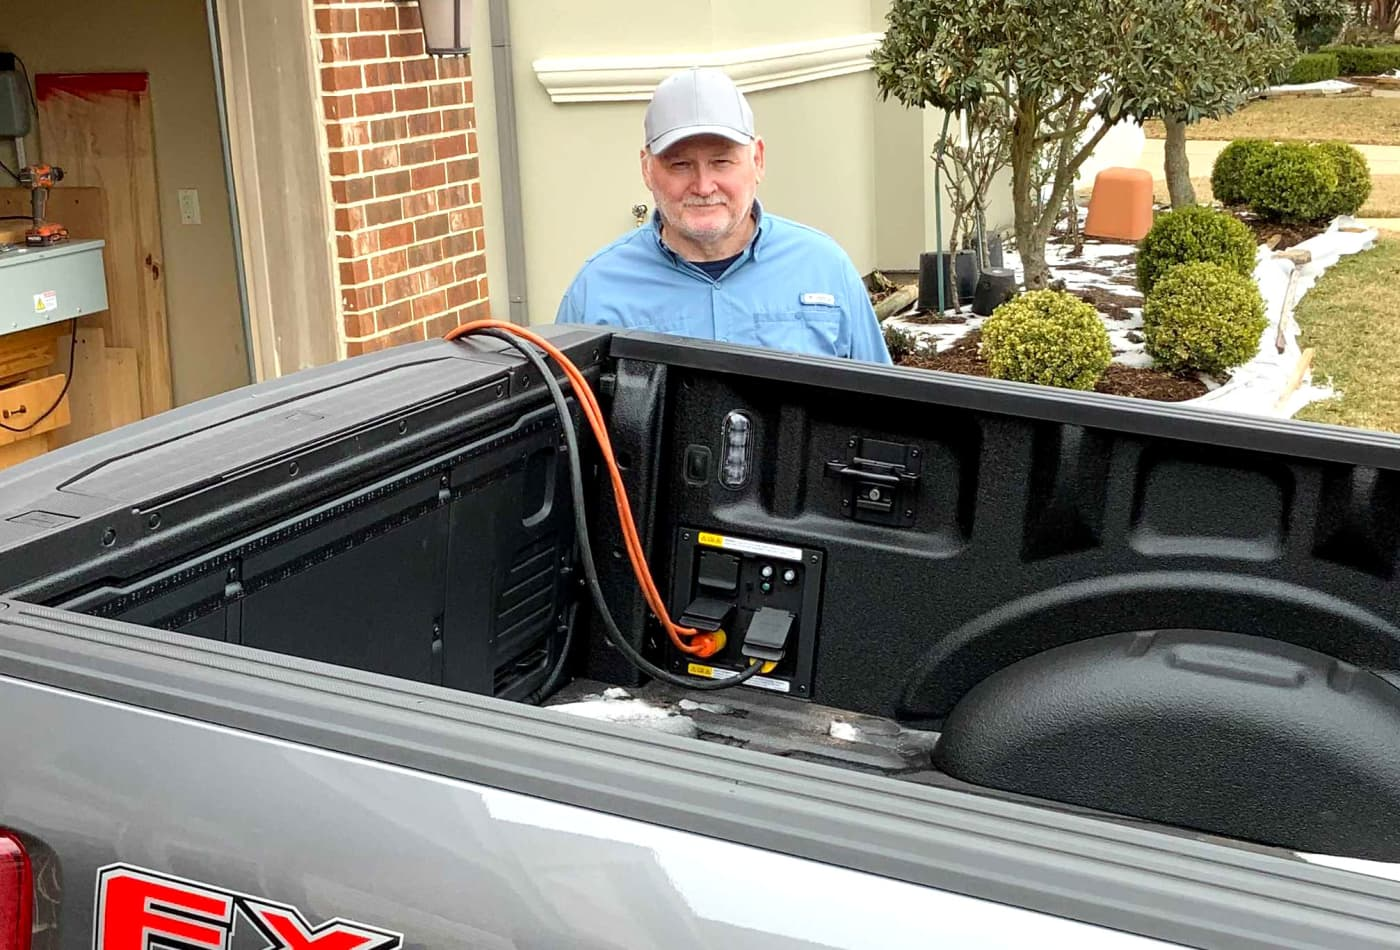 Some Texans use 2021 Ford F-150 hybrid pickup trucks to power homes amid winter storm